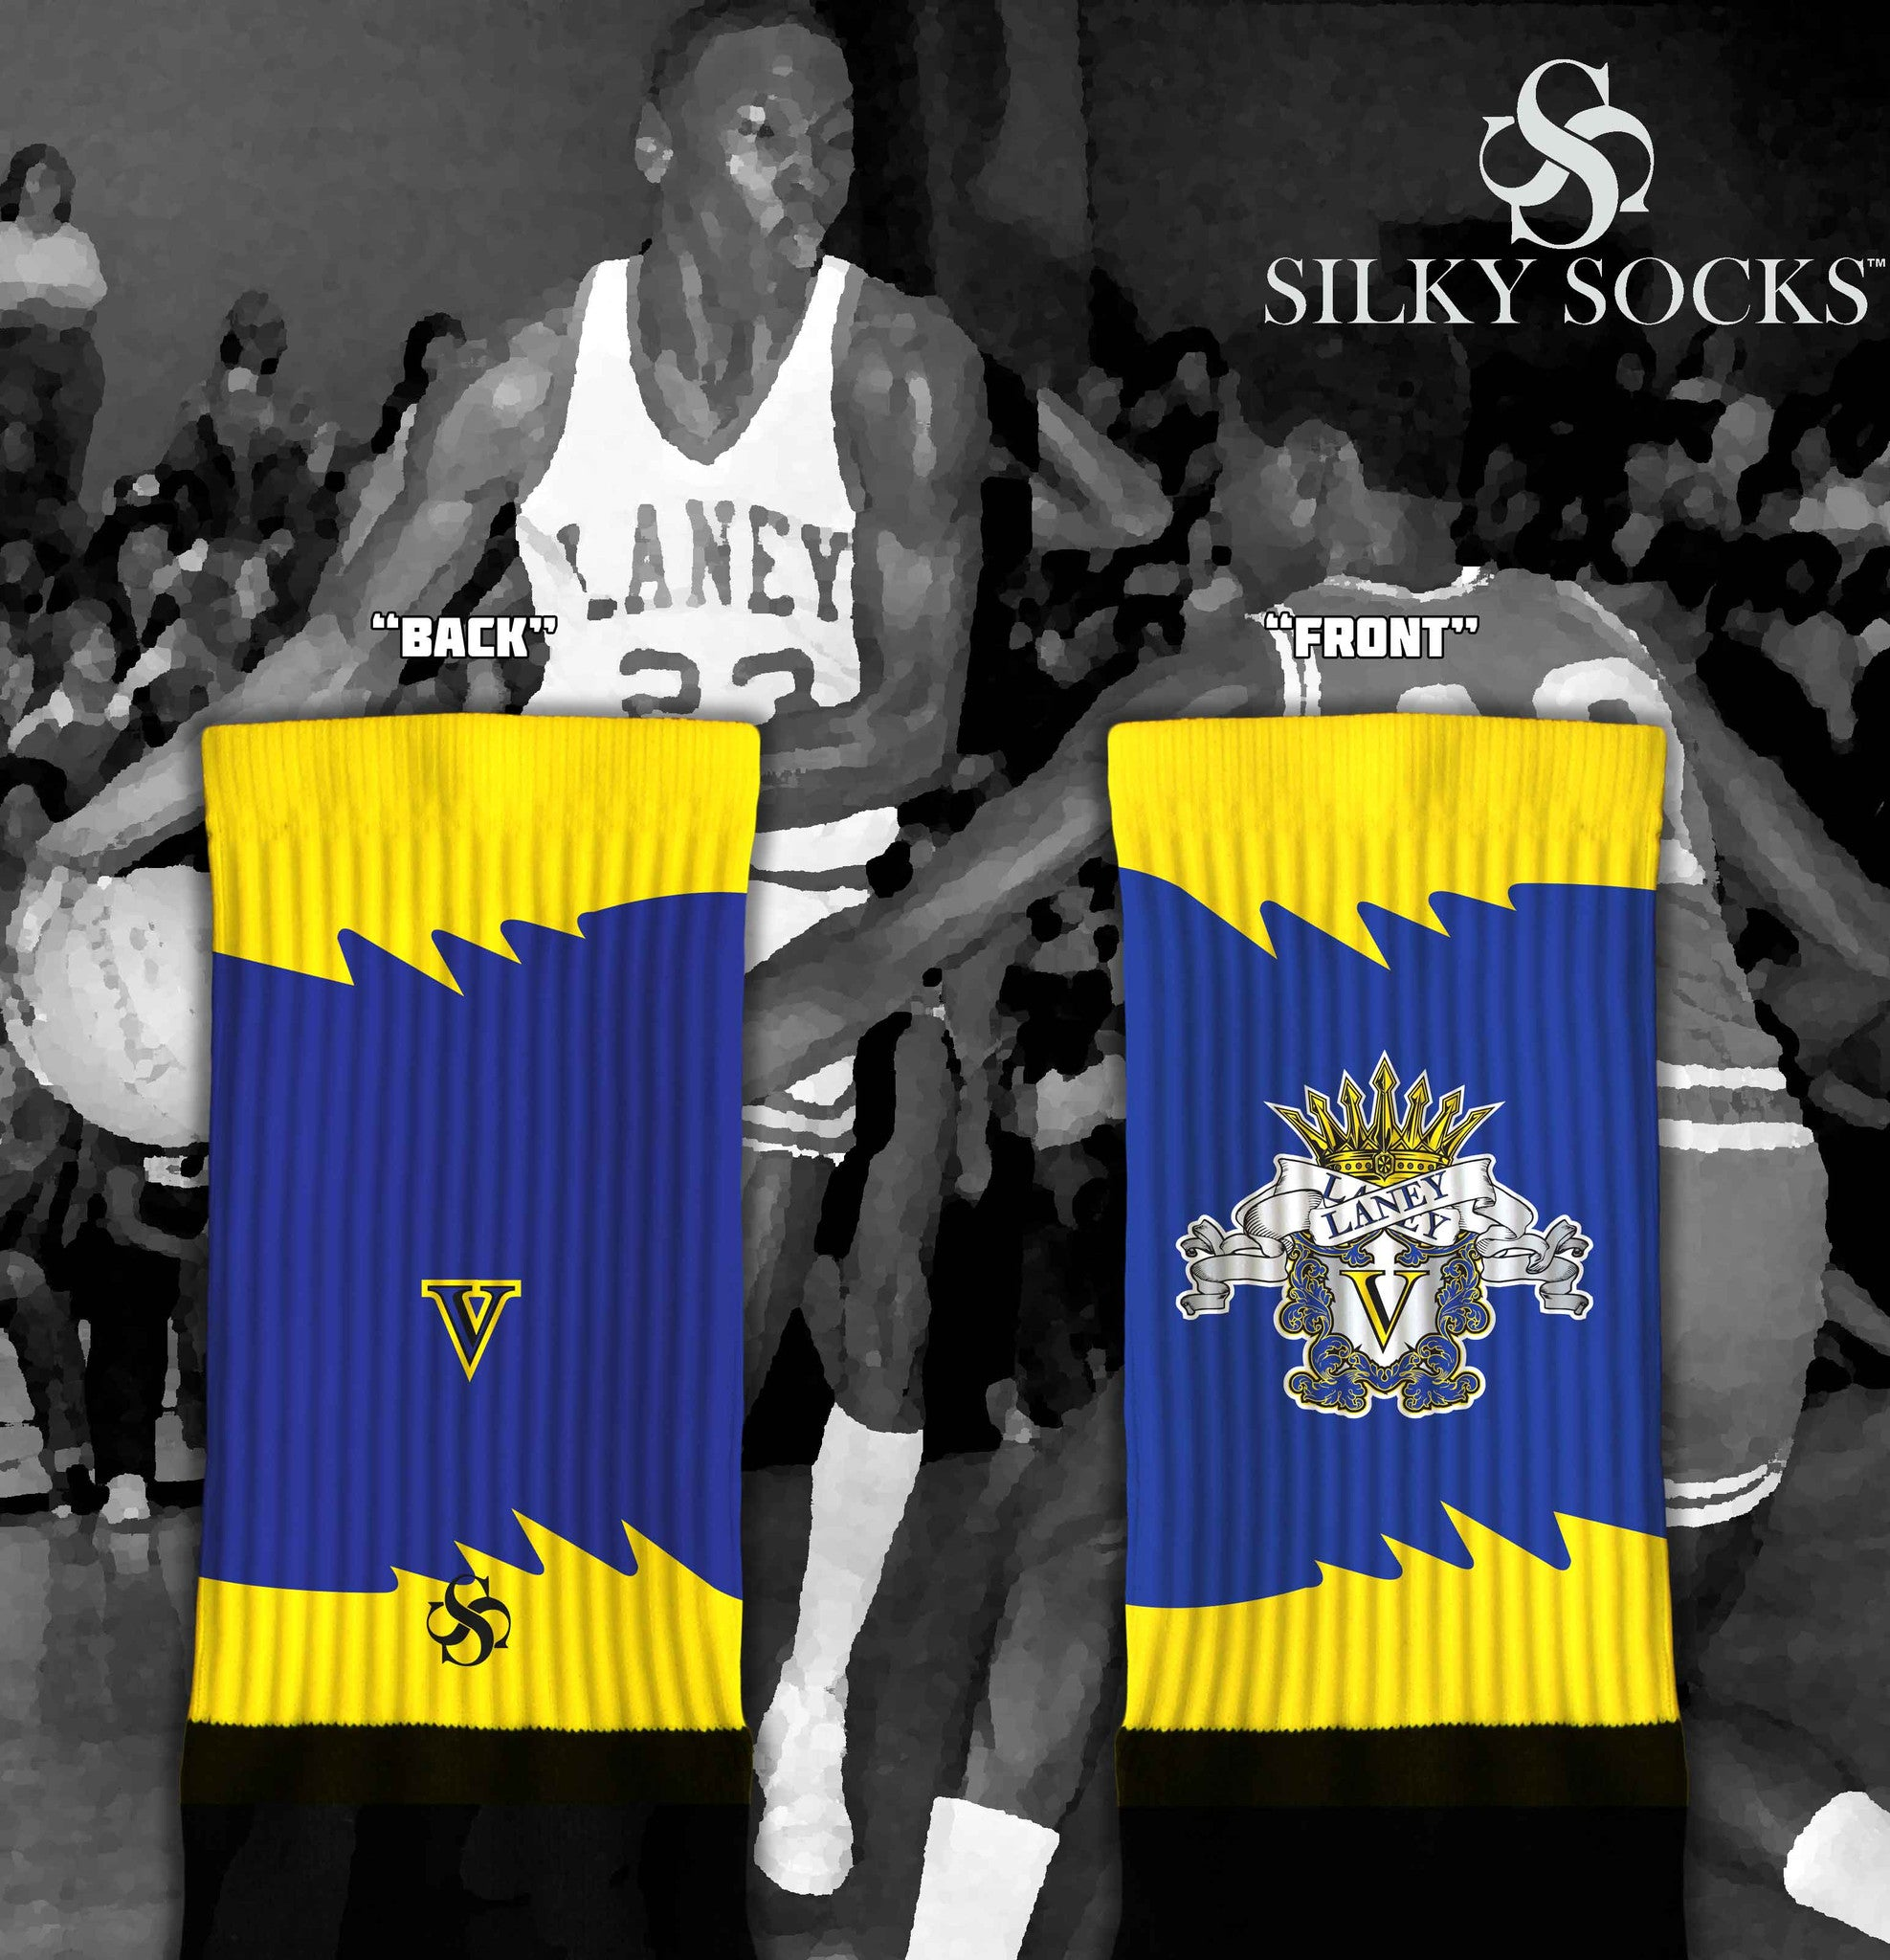 Royal Laney - 2 colorways - SILKY SOCKS - official store